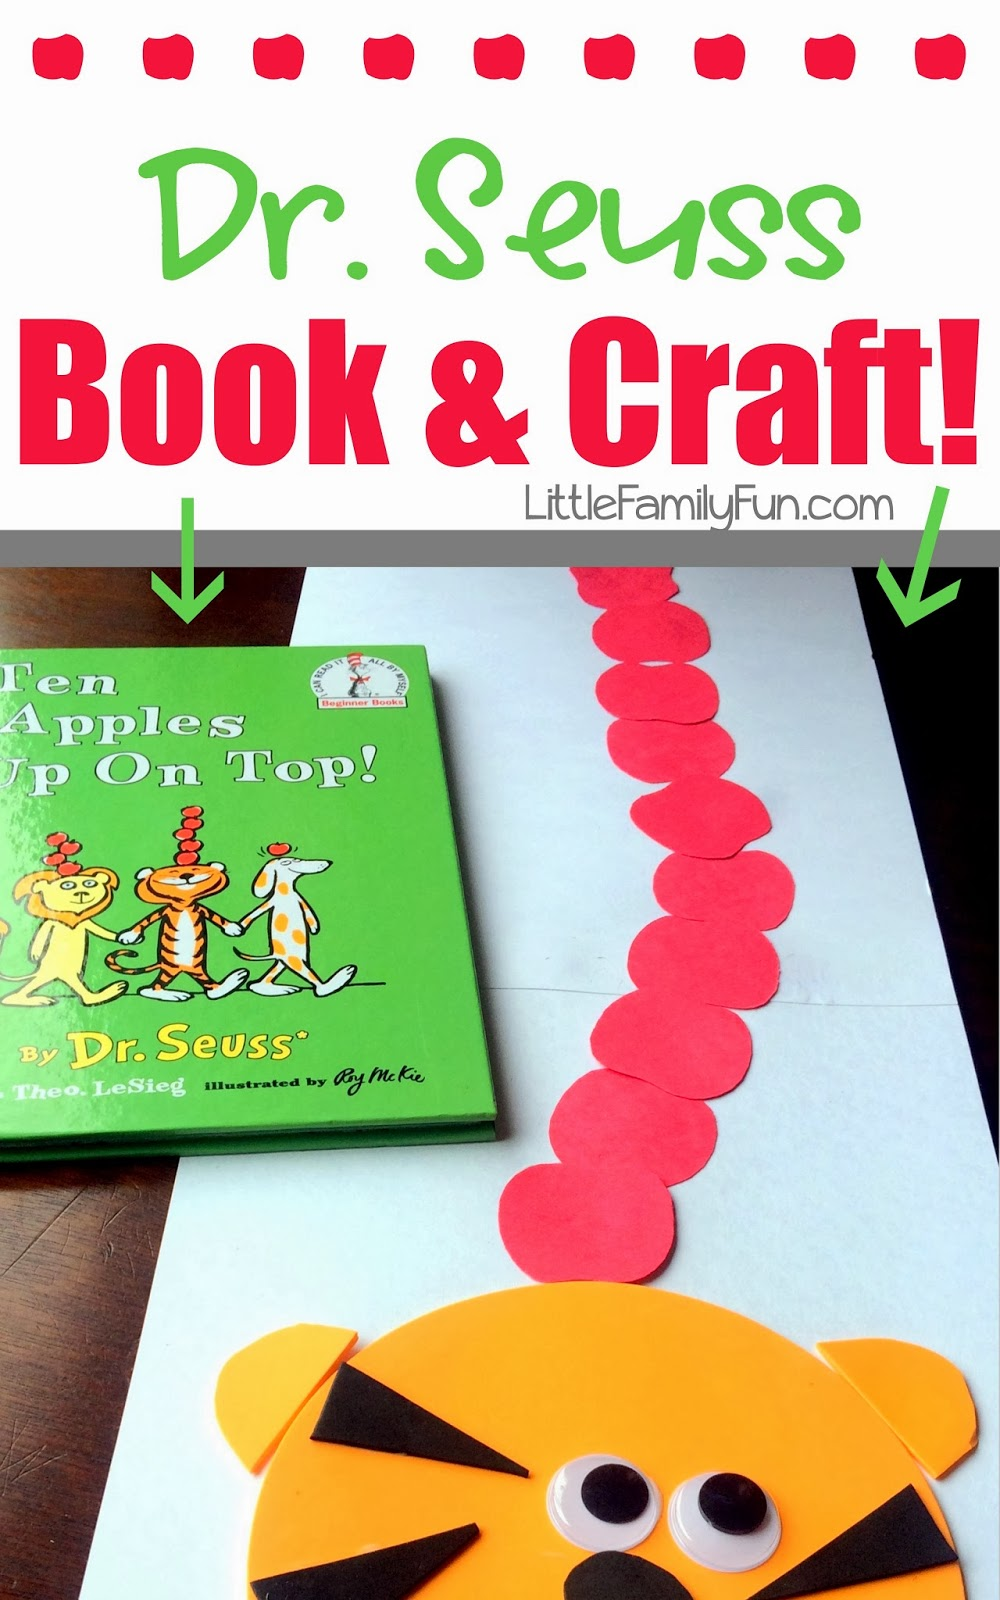 http://www.littlefamilyfun.com/2014/02/ten-apples-up-on-top-craft-dr-seuss.html